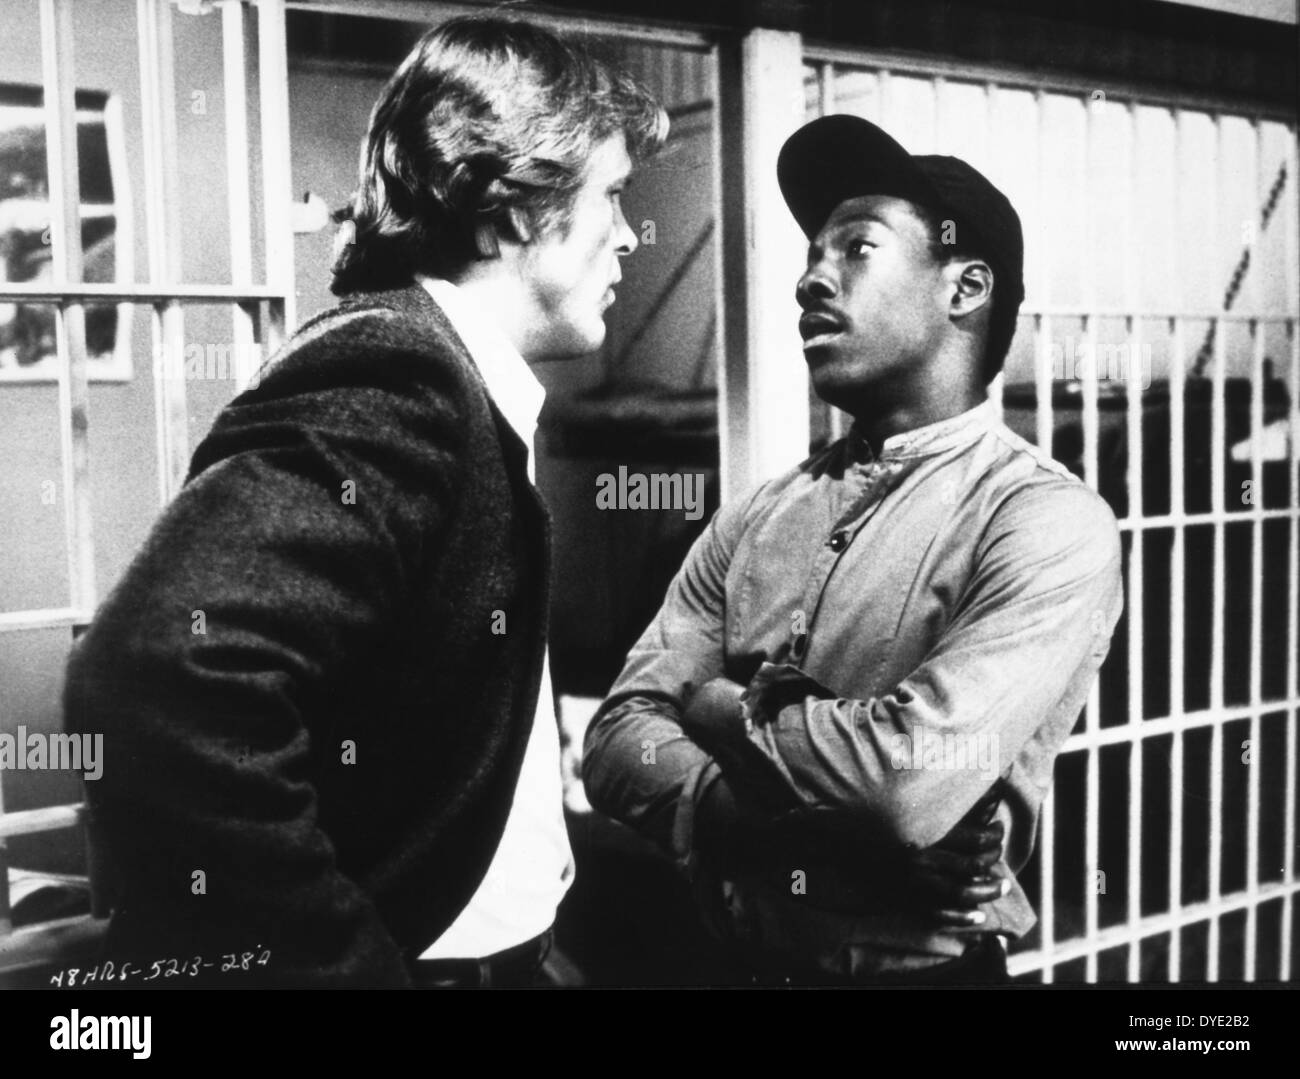 Eddie Murphy and Nick Nolte, on-set of the Film, '48 Hrs.', 1982 - Stock Image